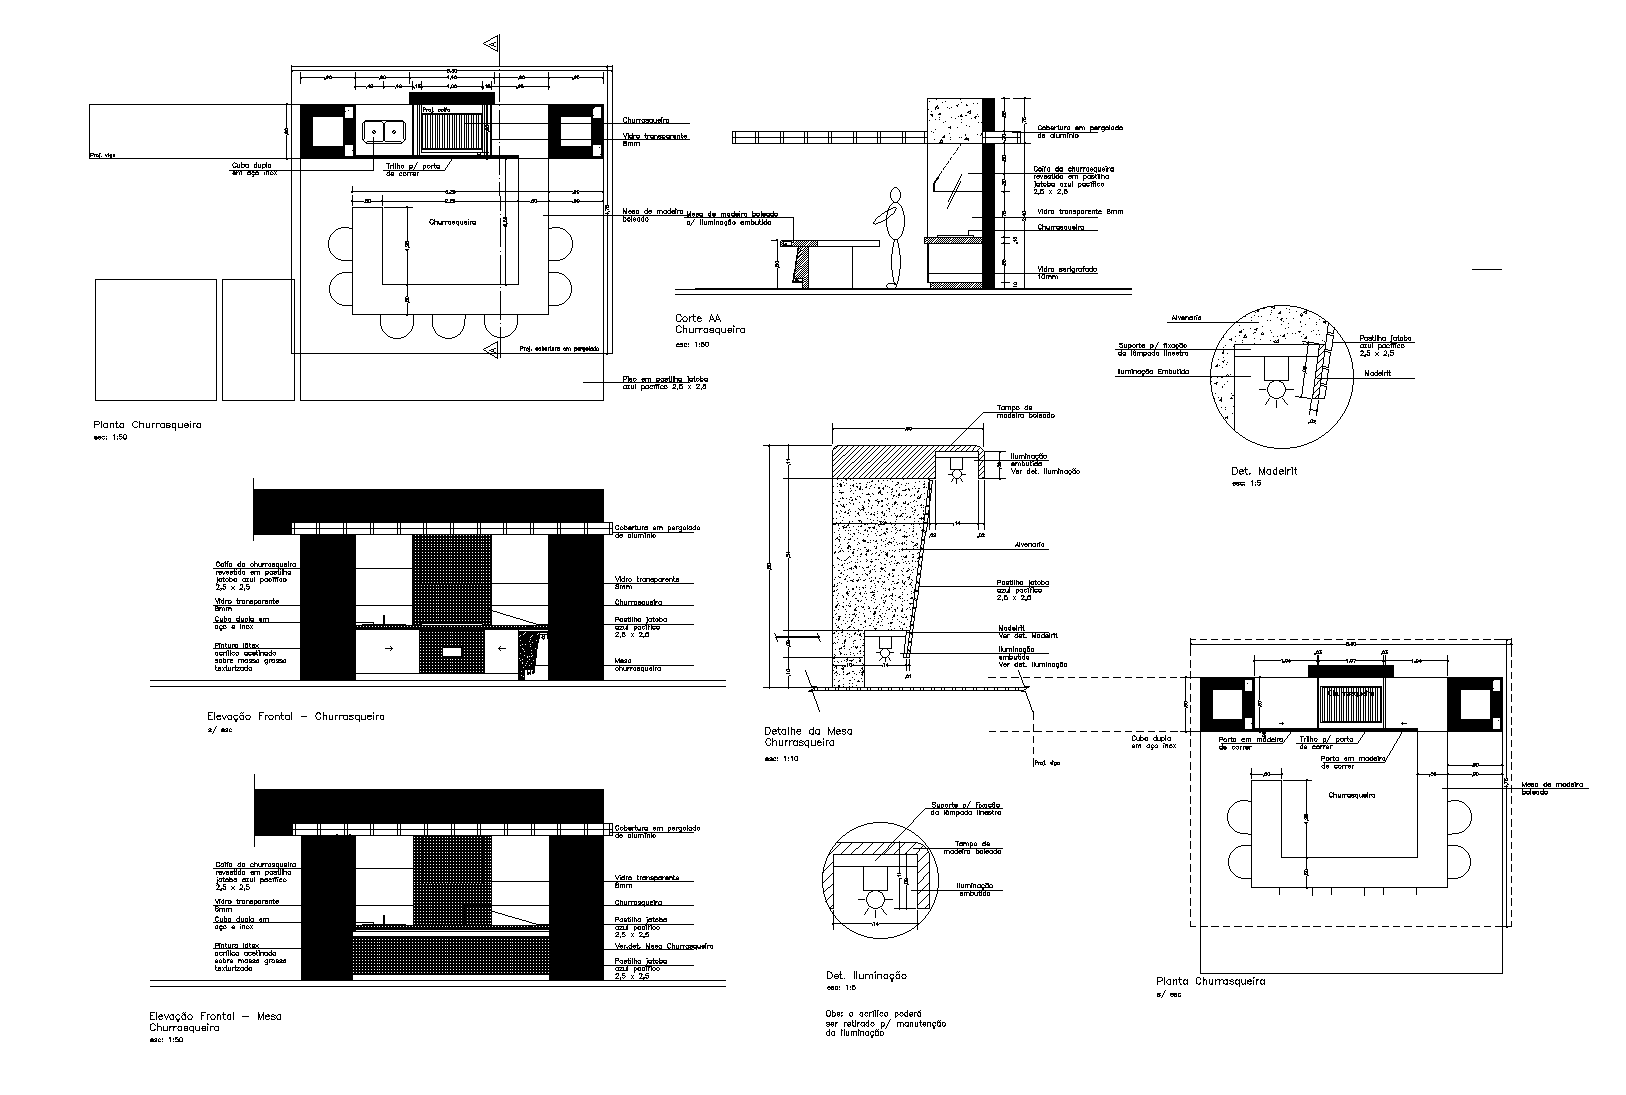 Barbeque grill plan dwg file.